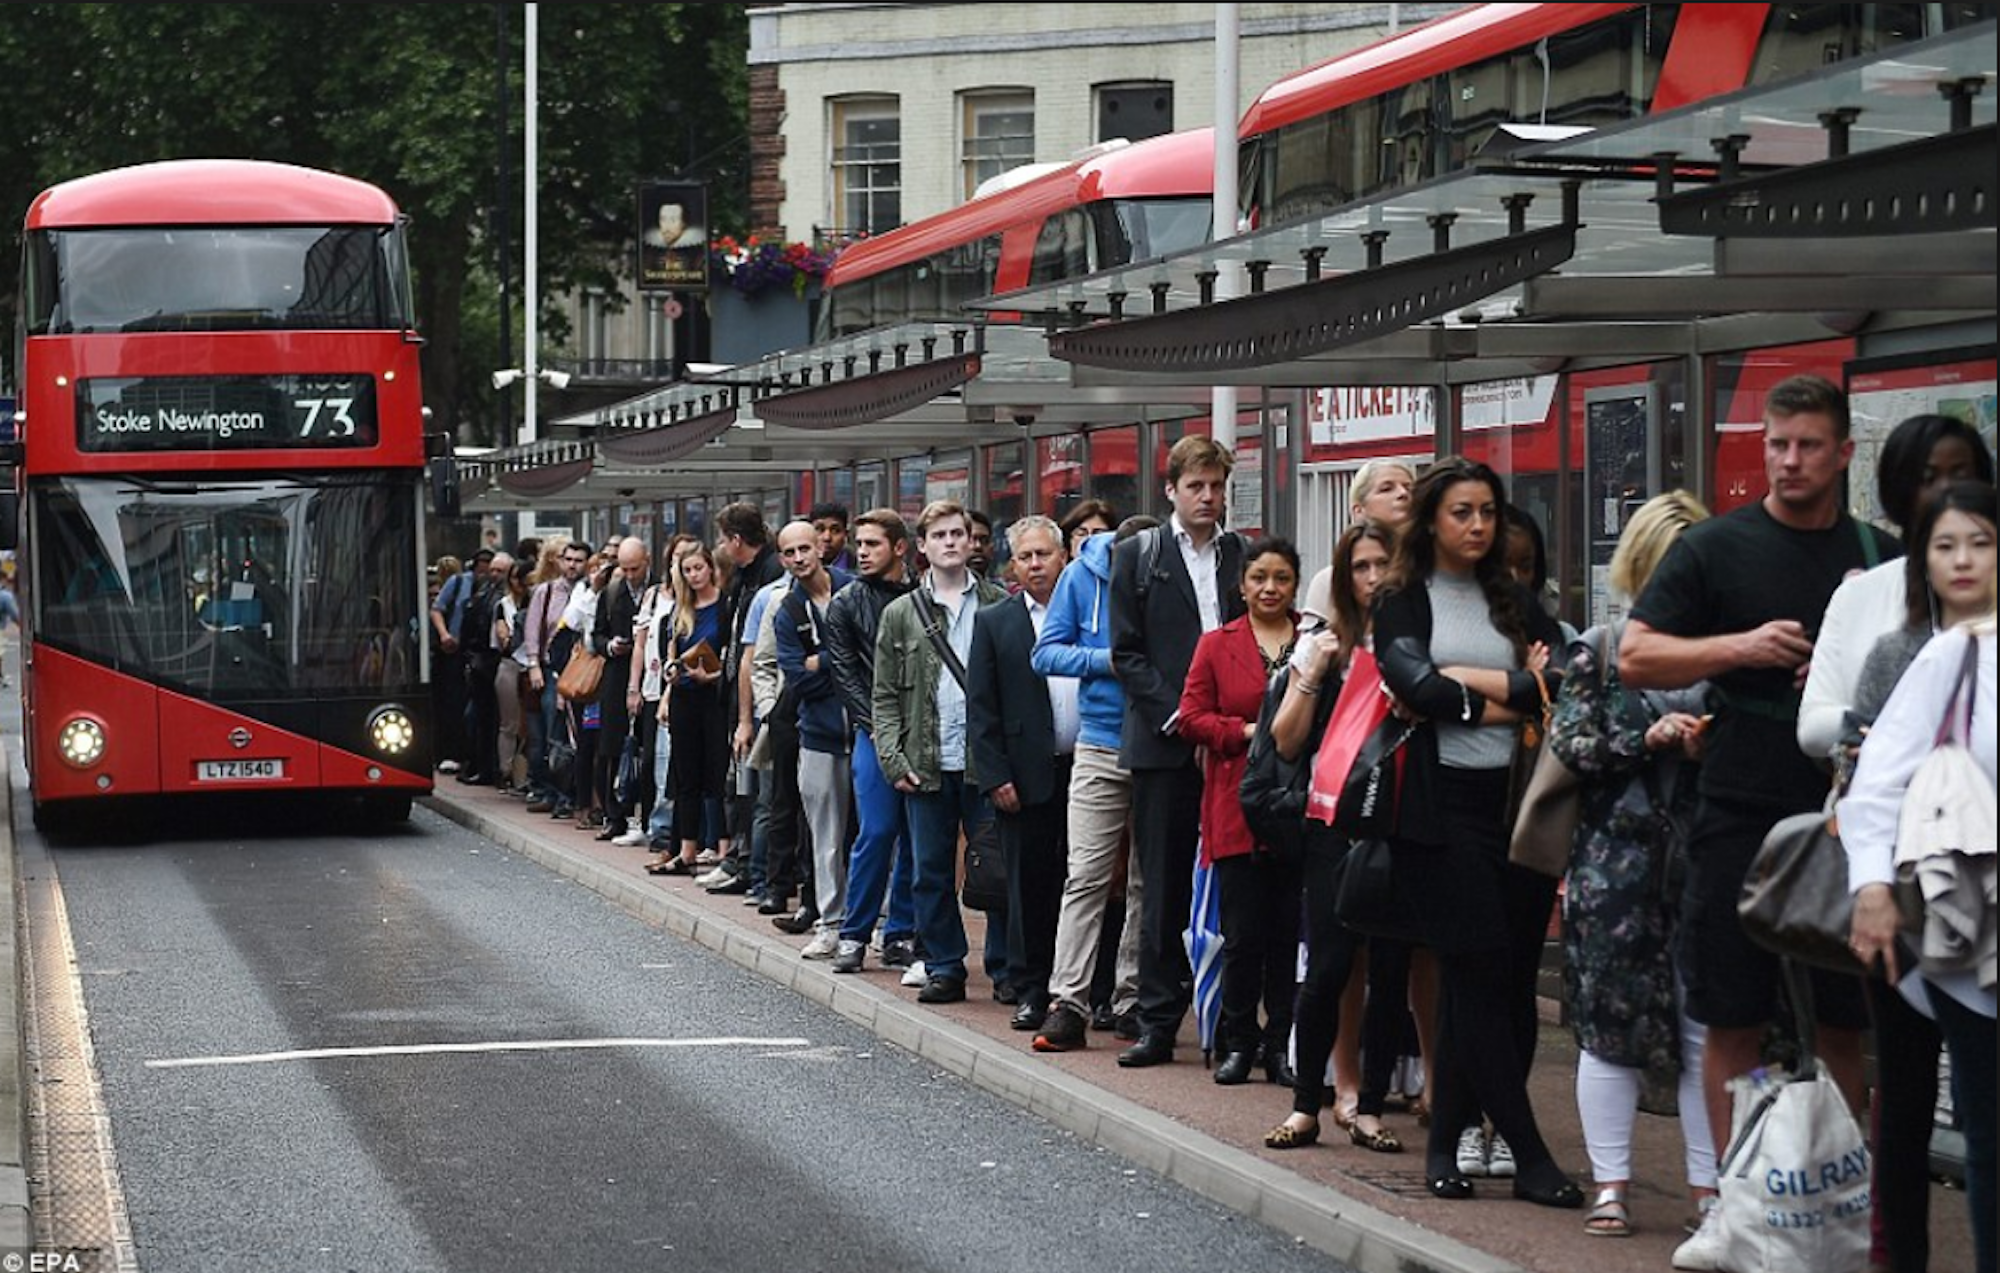 Queuing For a bus in London